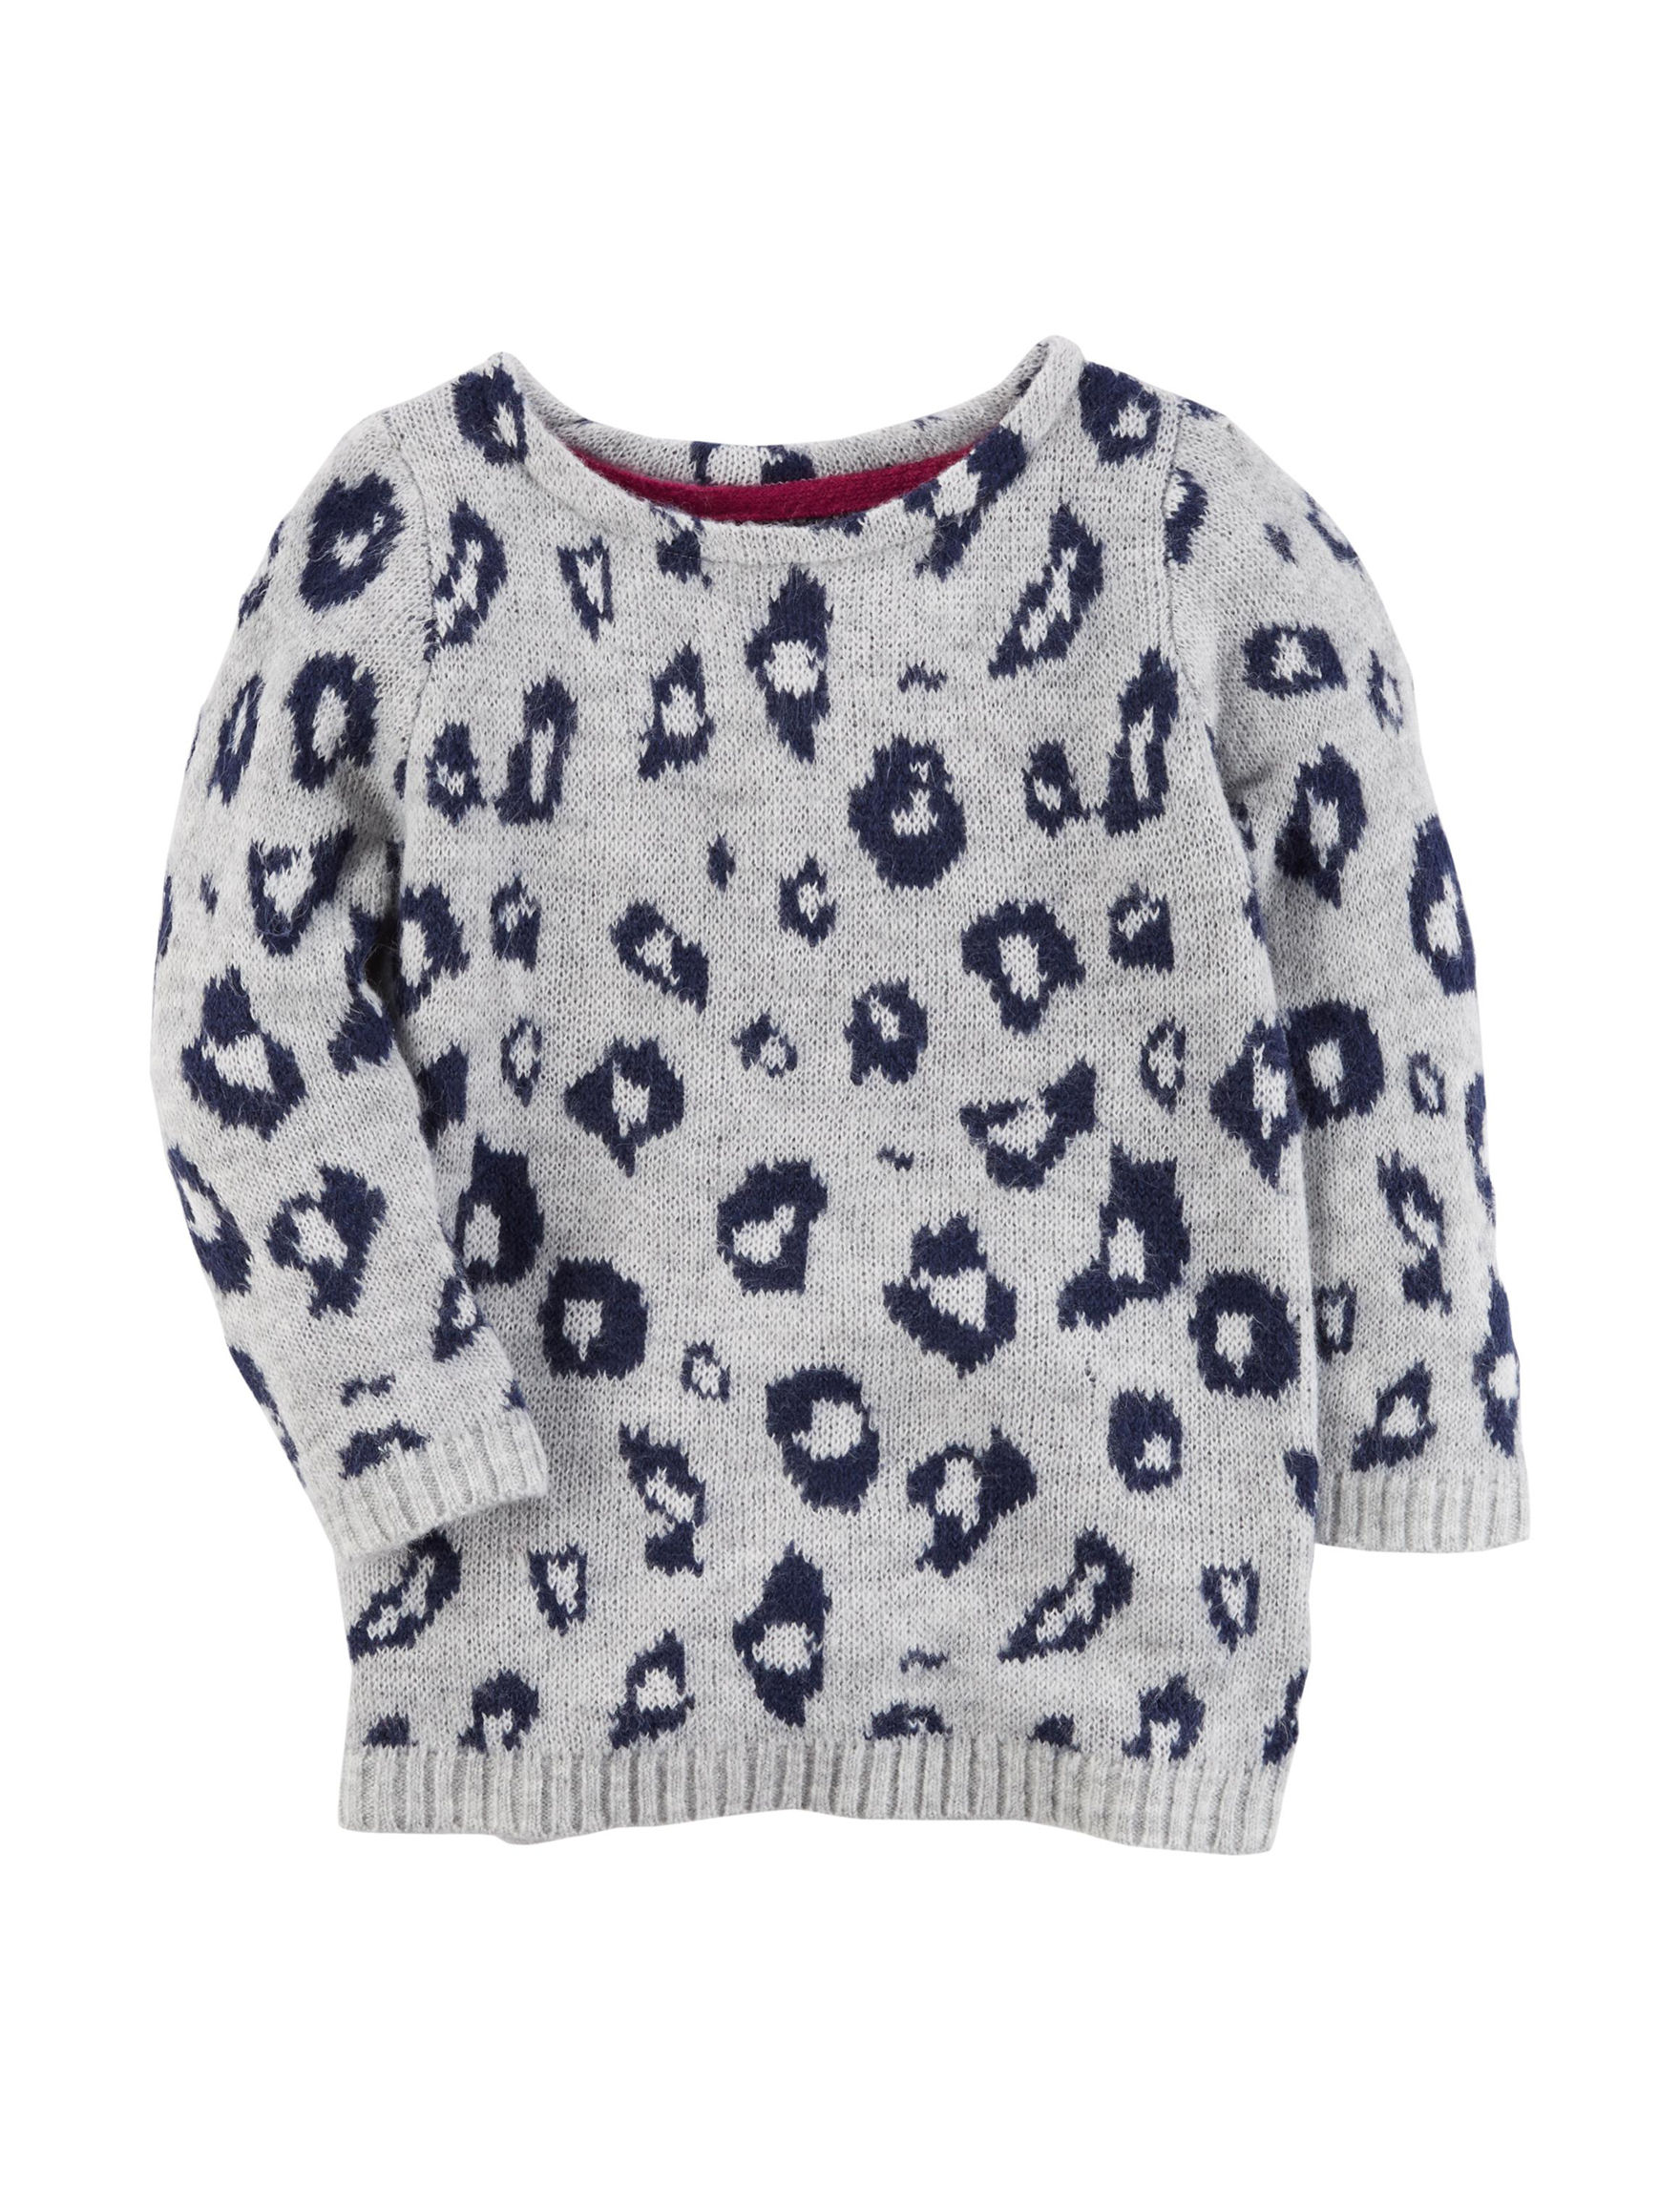 Carter's Leopard Print Sweater - Girls 4-8 | Stage Stores